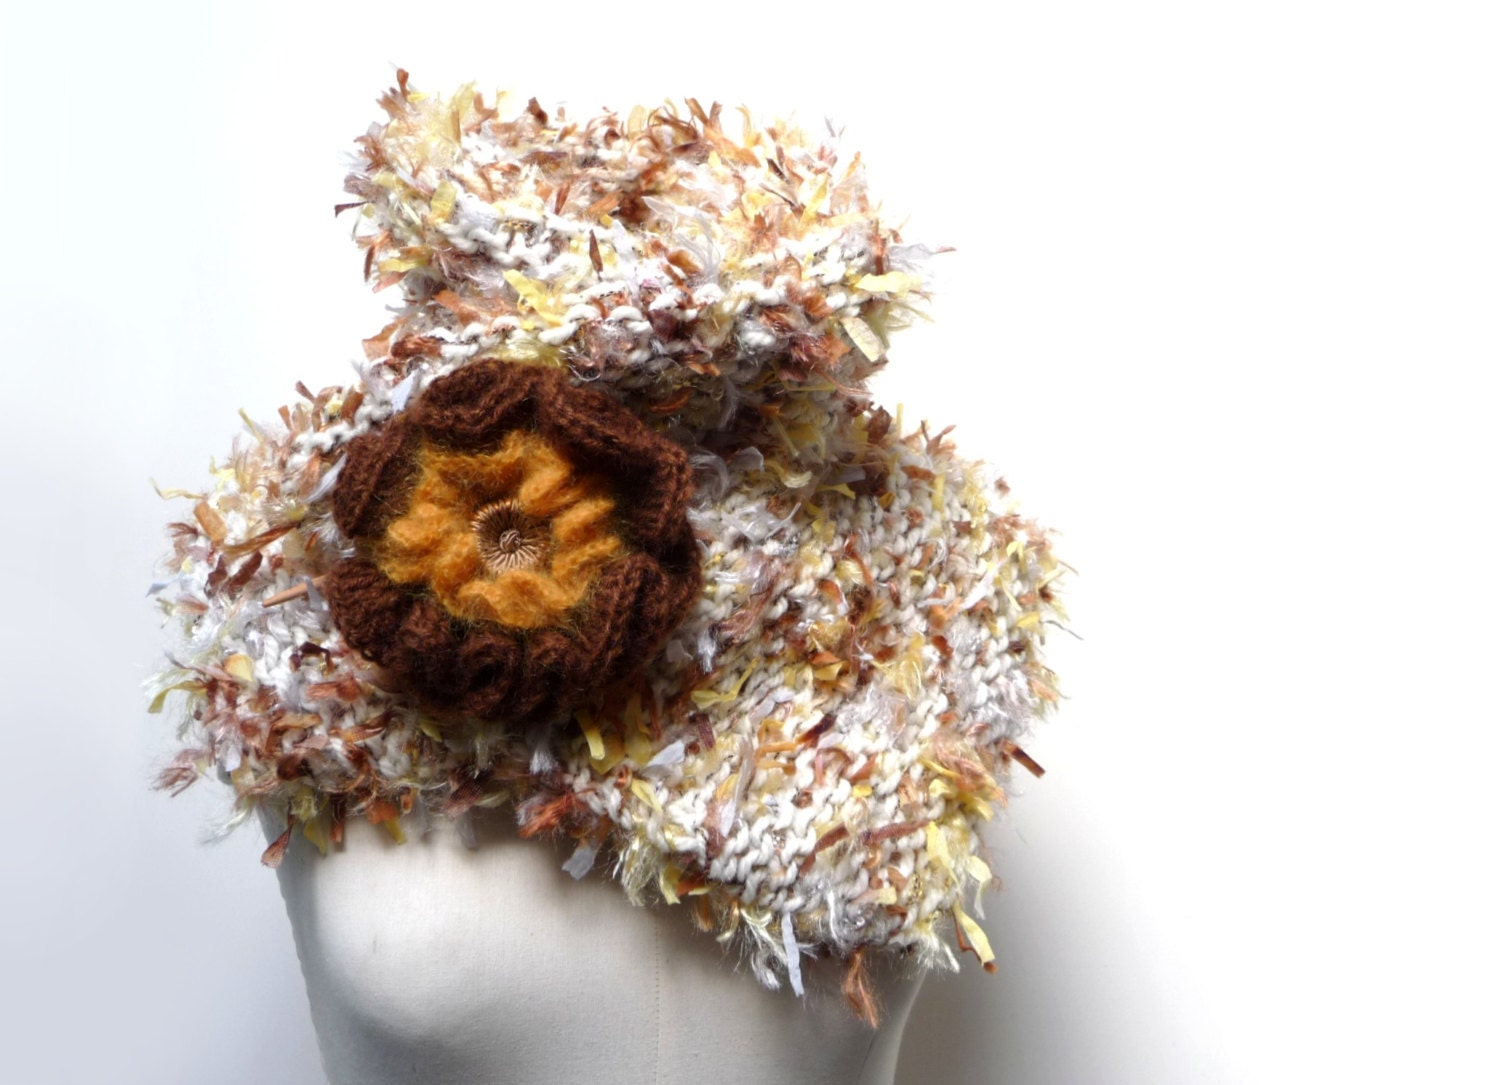 Chunky Scarf, Shrug, Bolero, Neckwarmer - Handknit Multifuncional - white, yellow, brown fuzzy yarn with giant flower brooch - SPICED SNOW - ixela